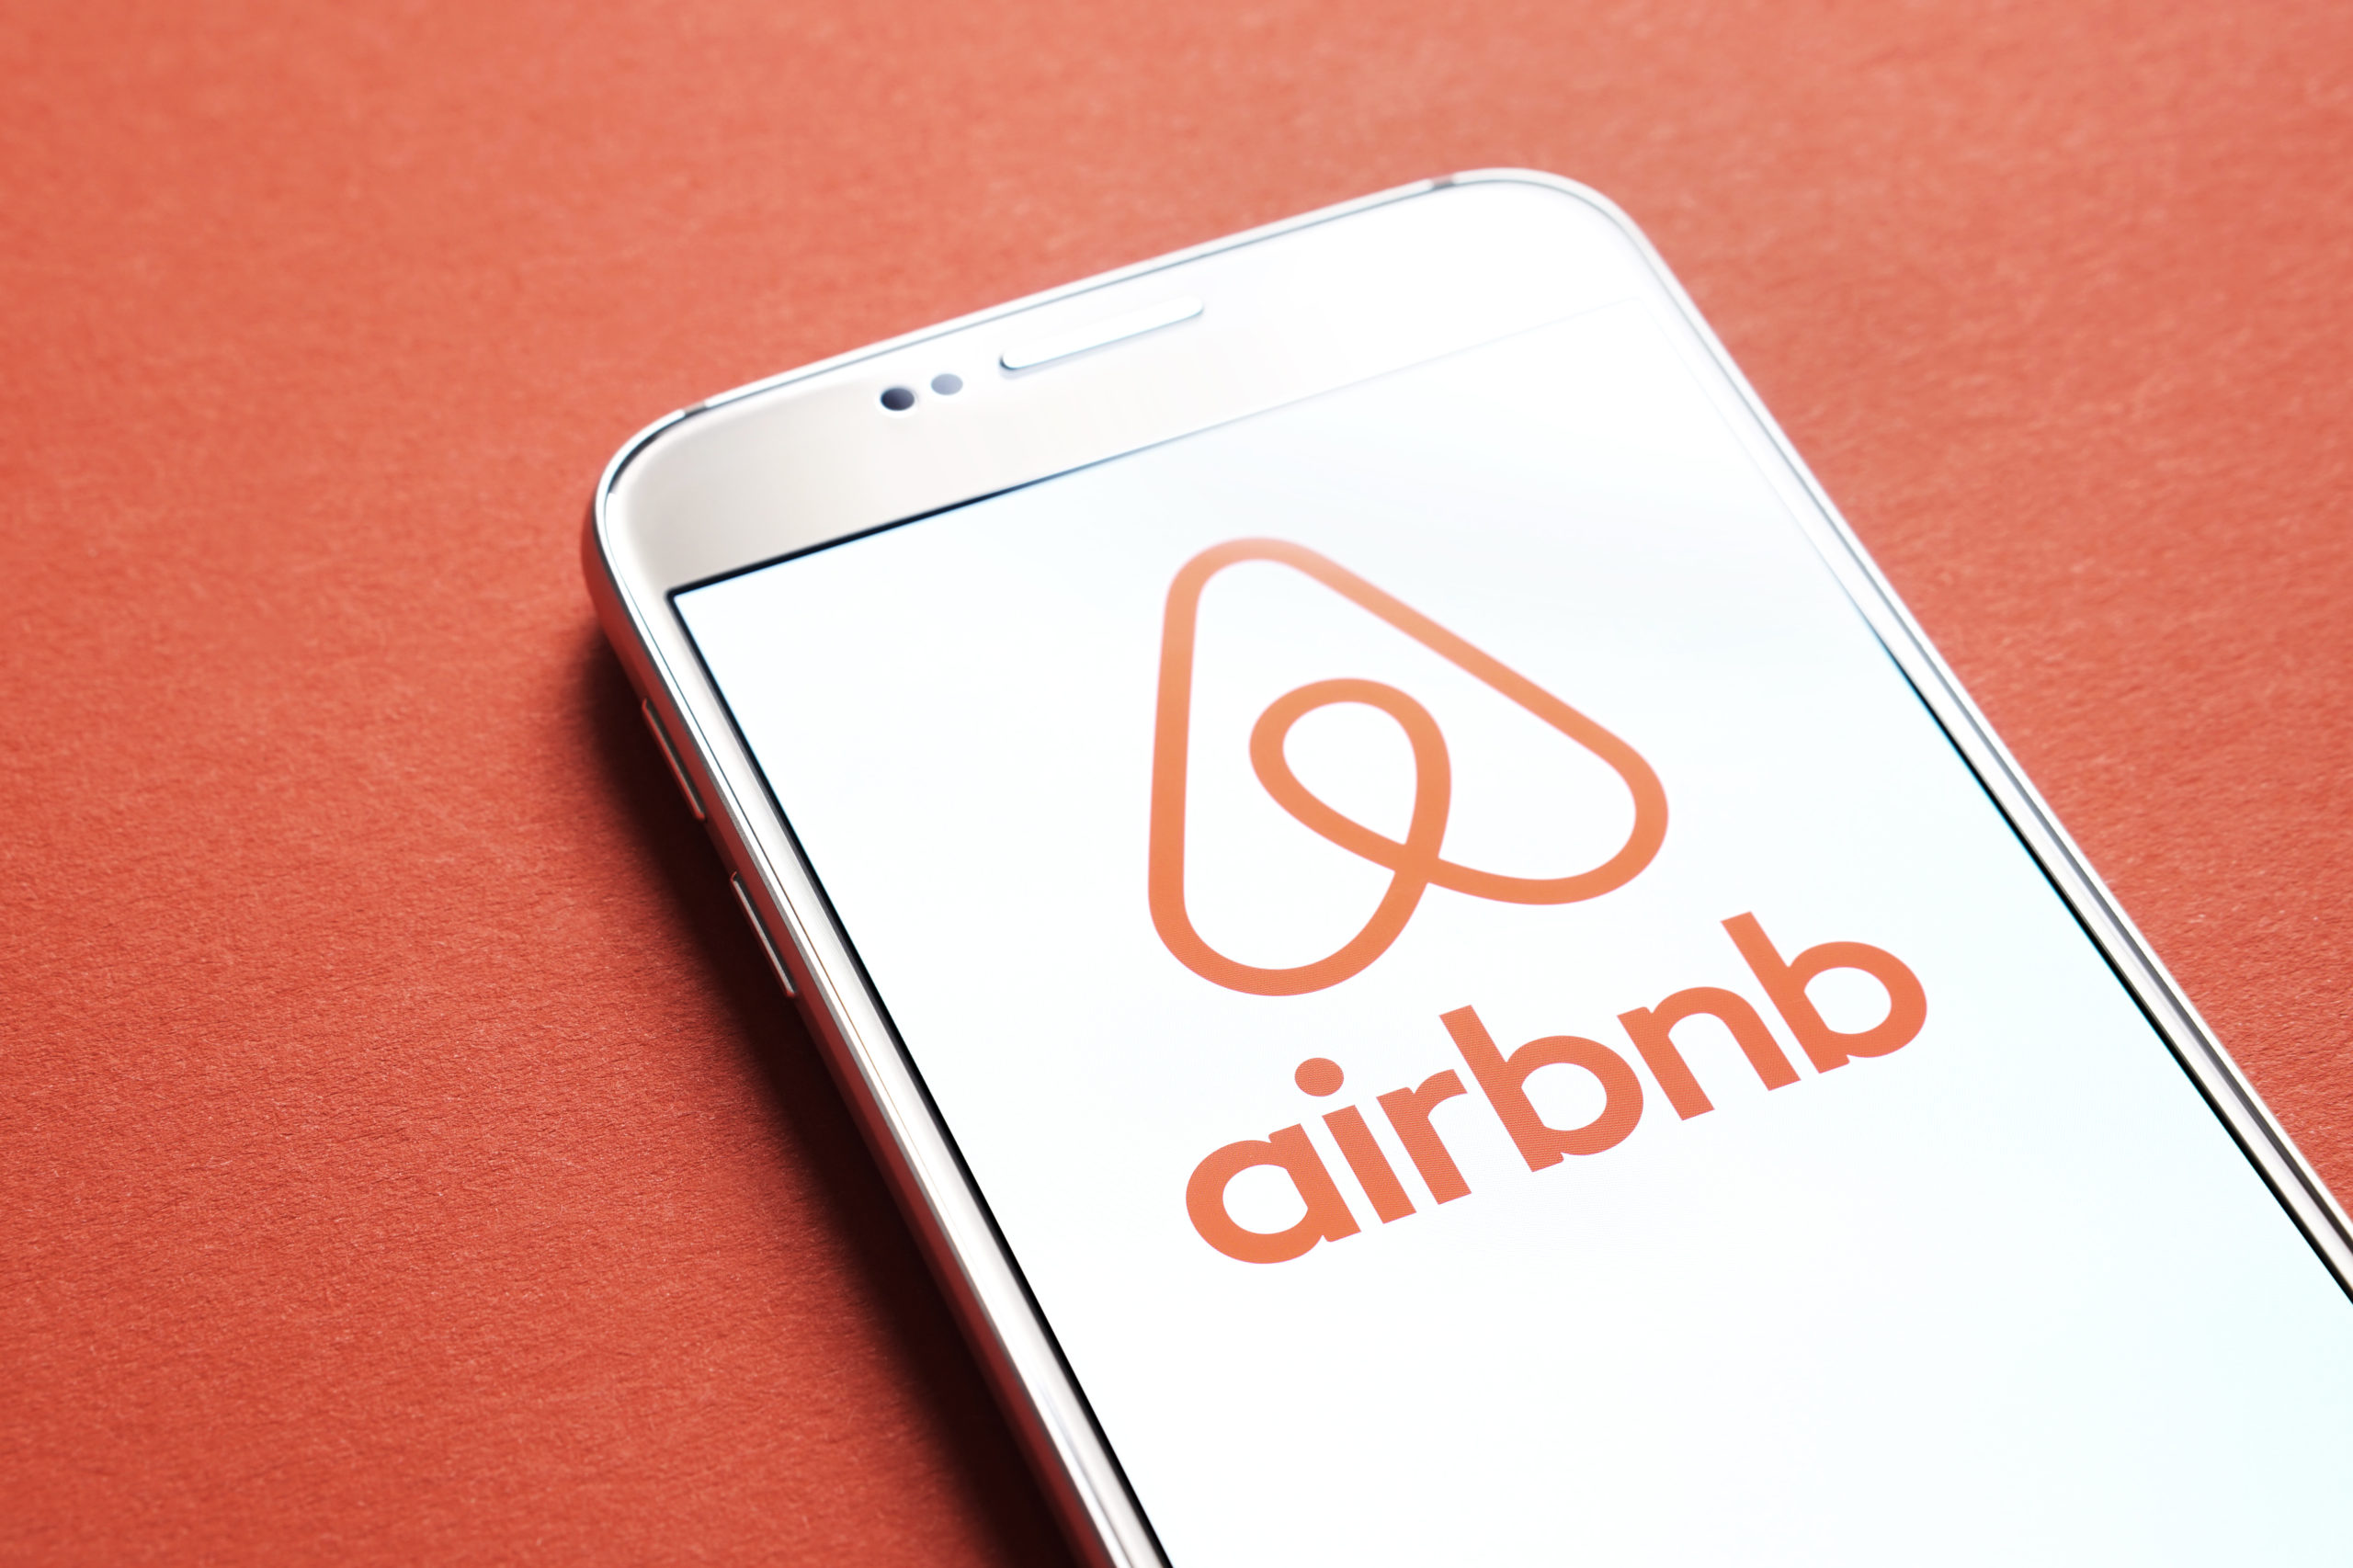 This is How a Freelance Workforce Can Save Airbnb from Going Bankrupt